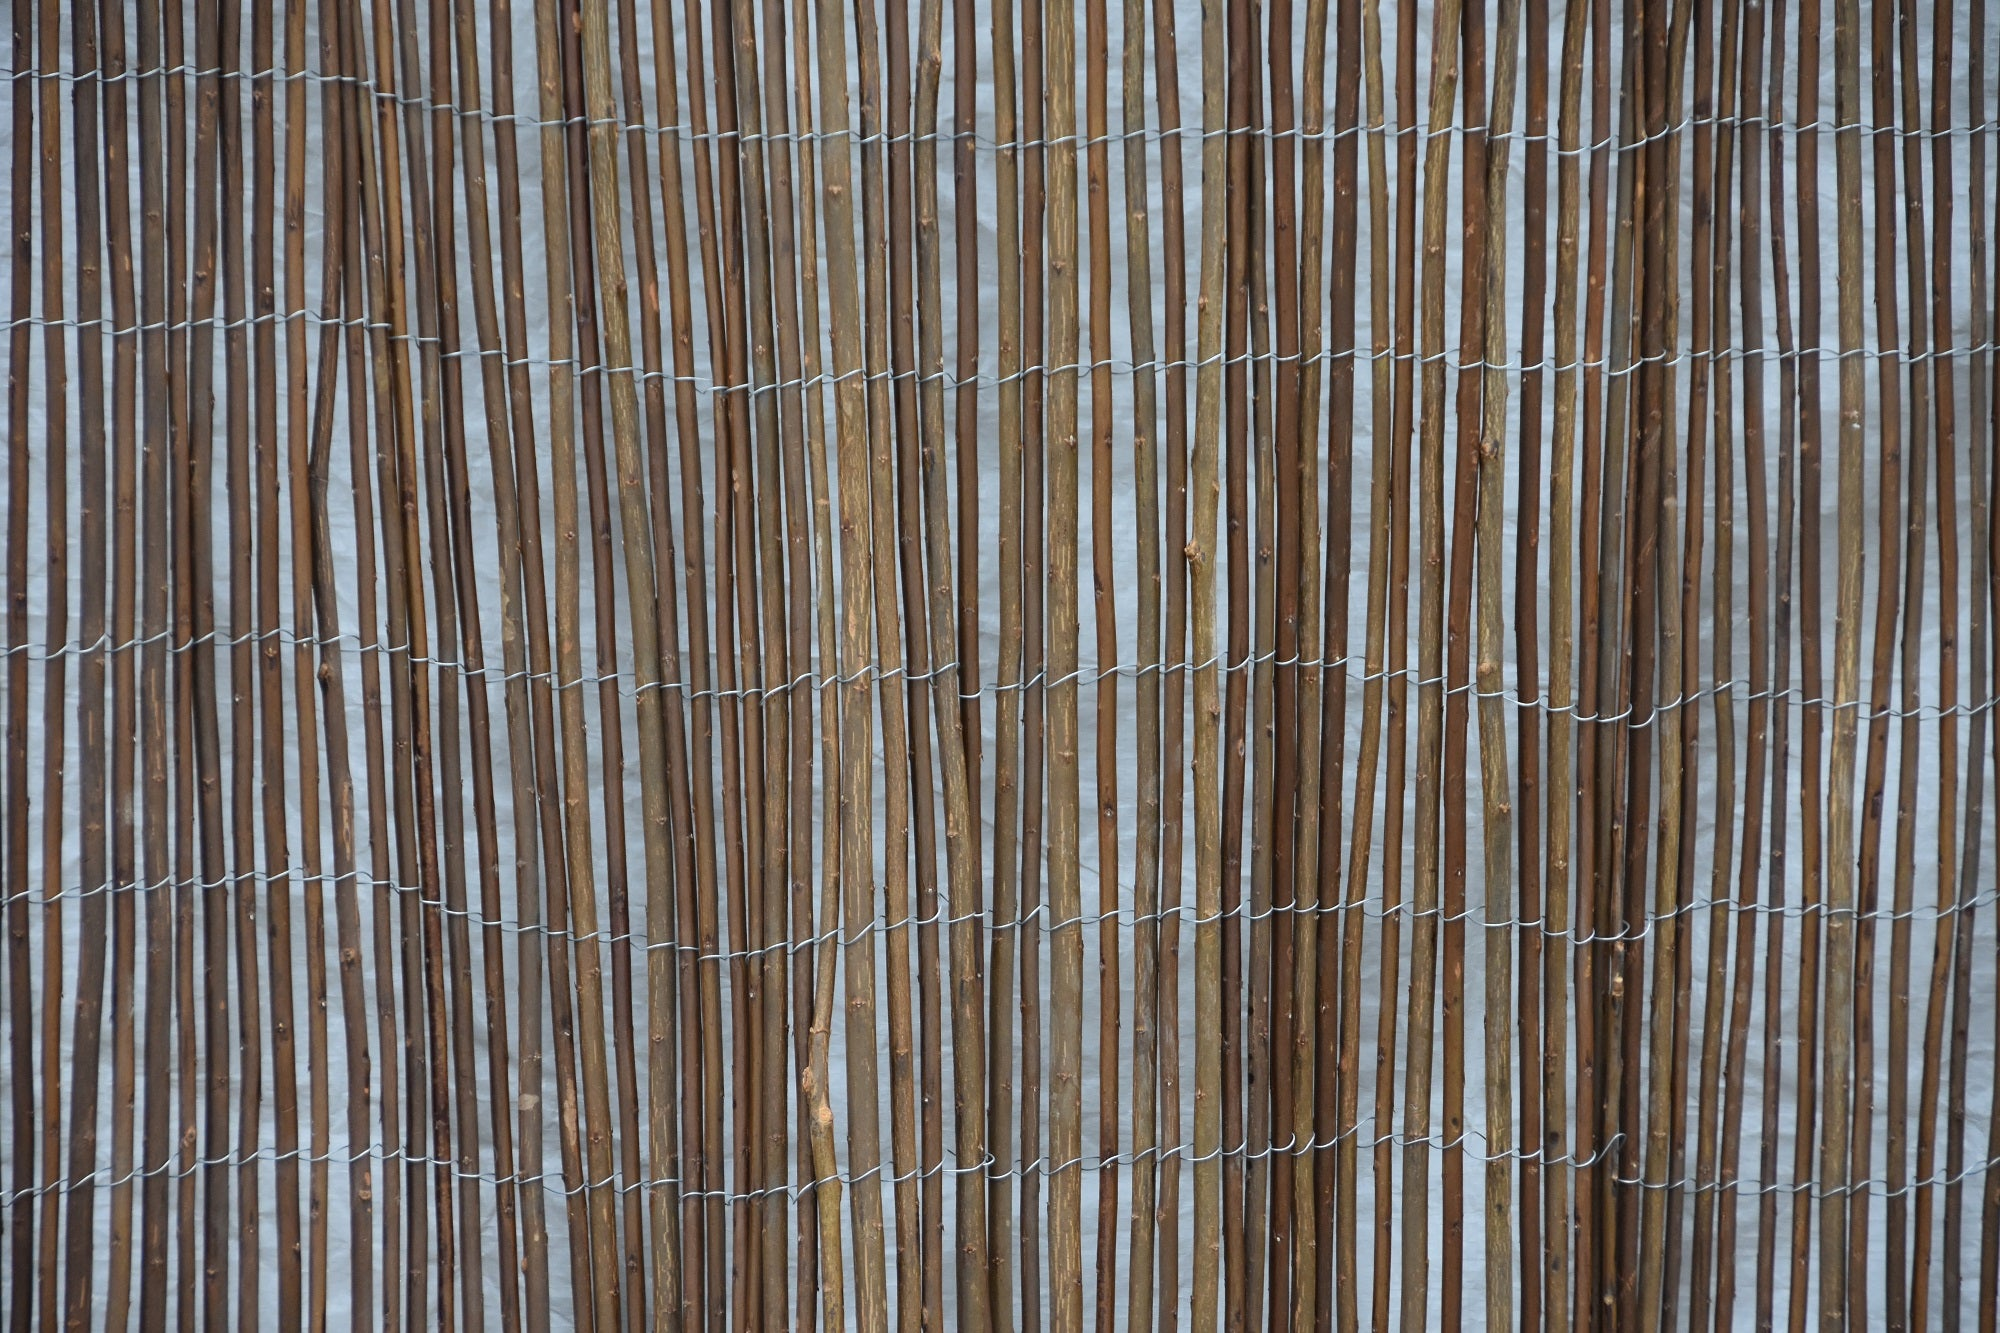 Willow Fencing - Bamboo Toronto Store